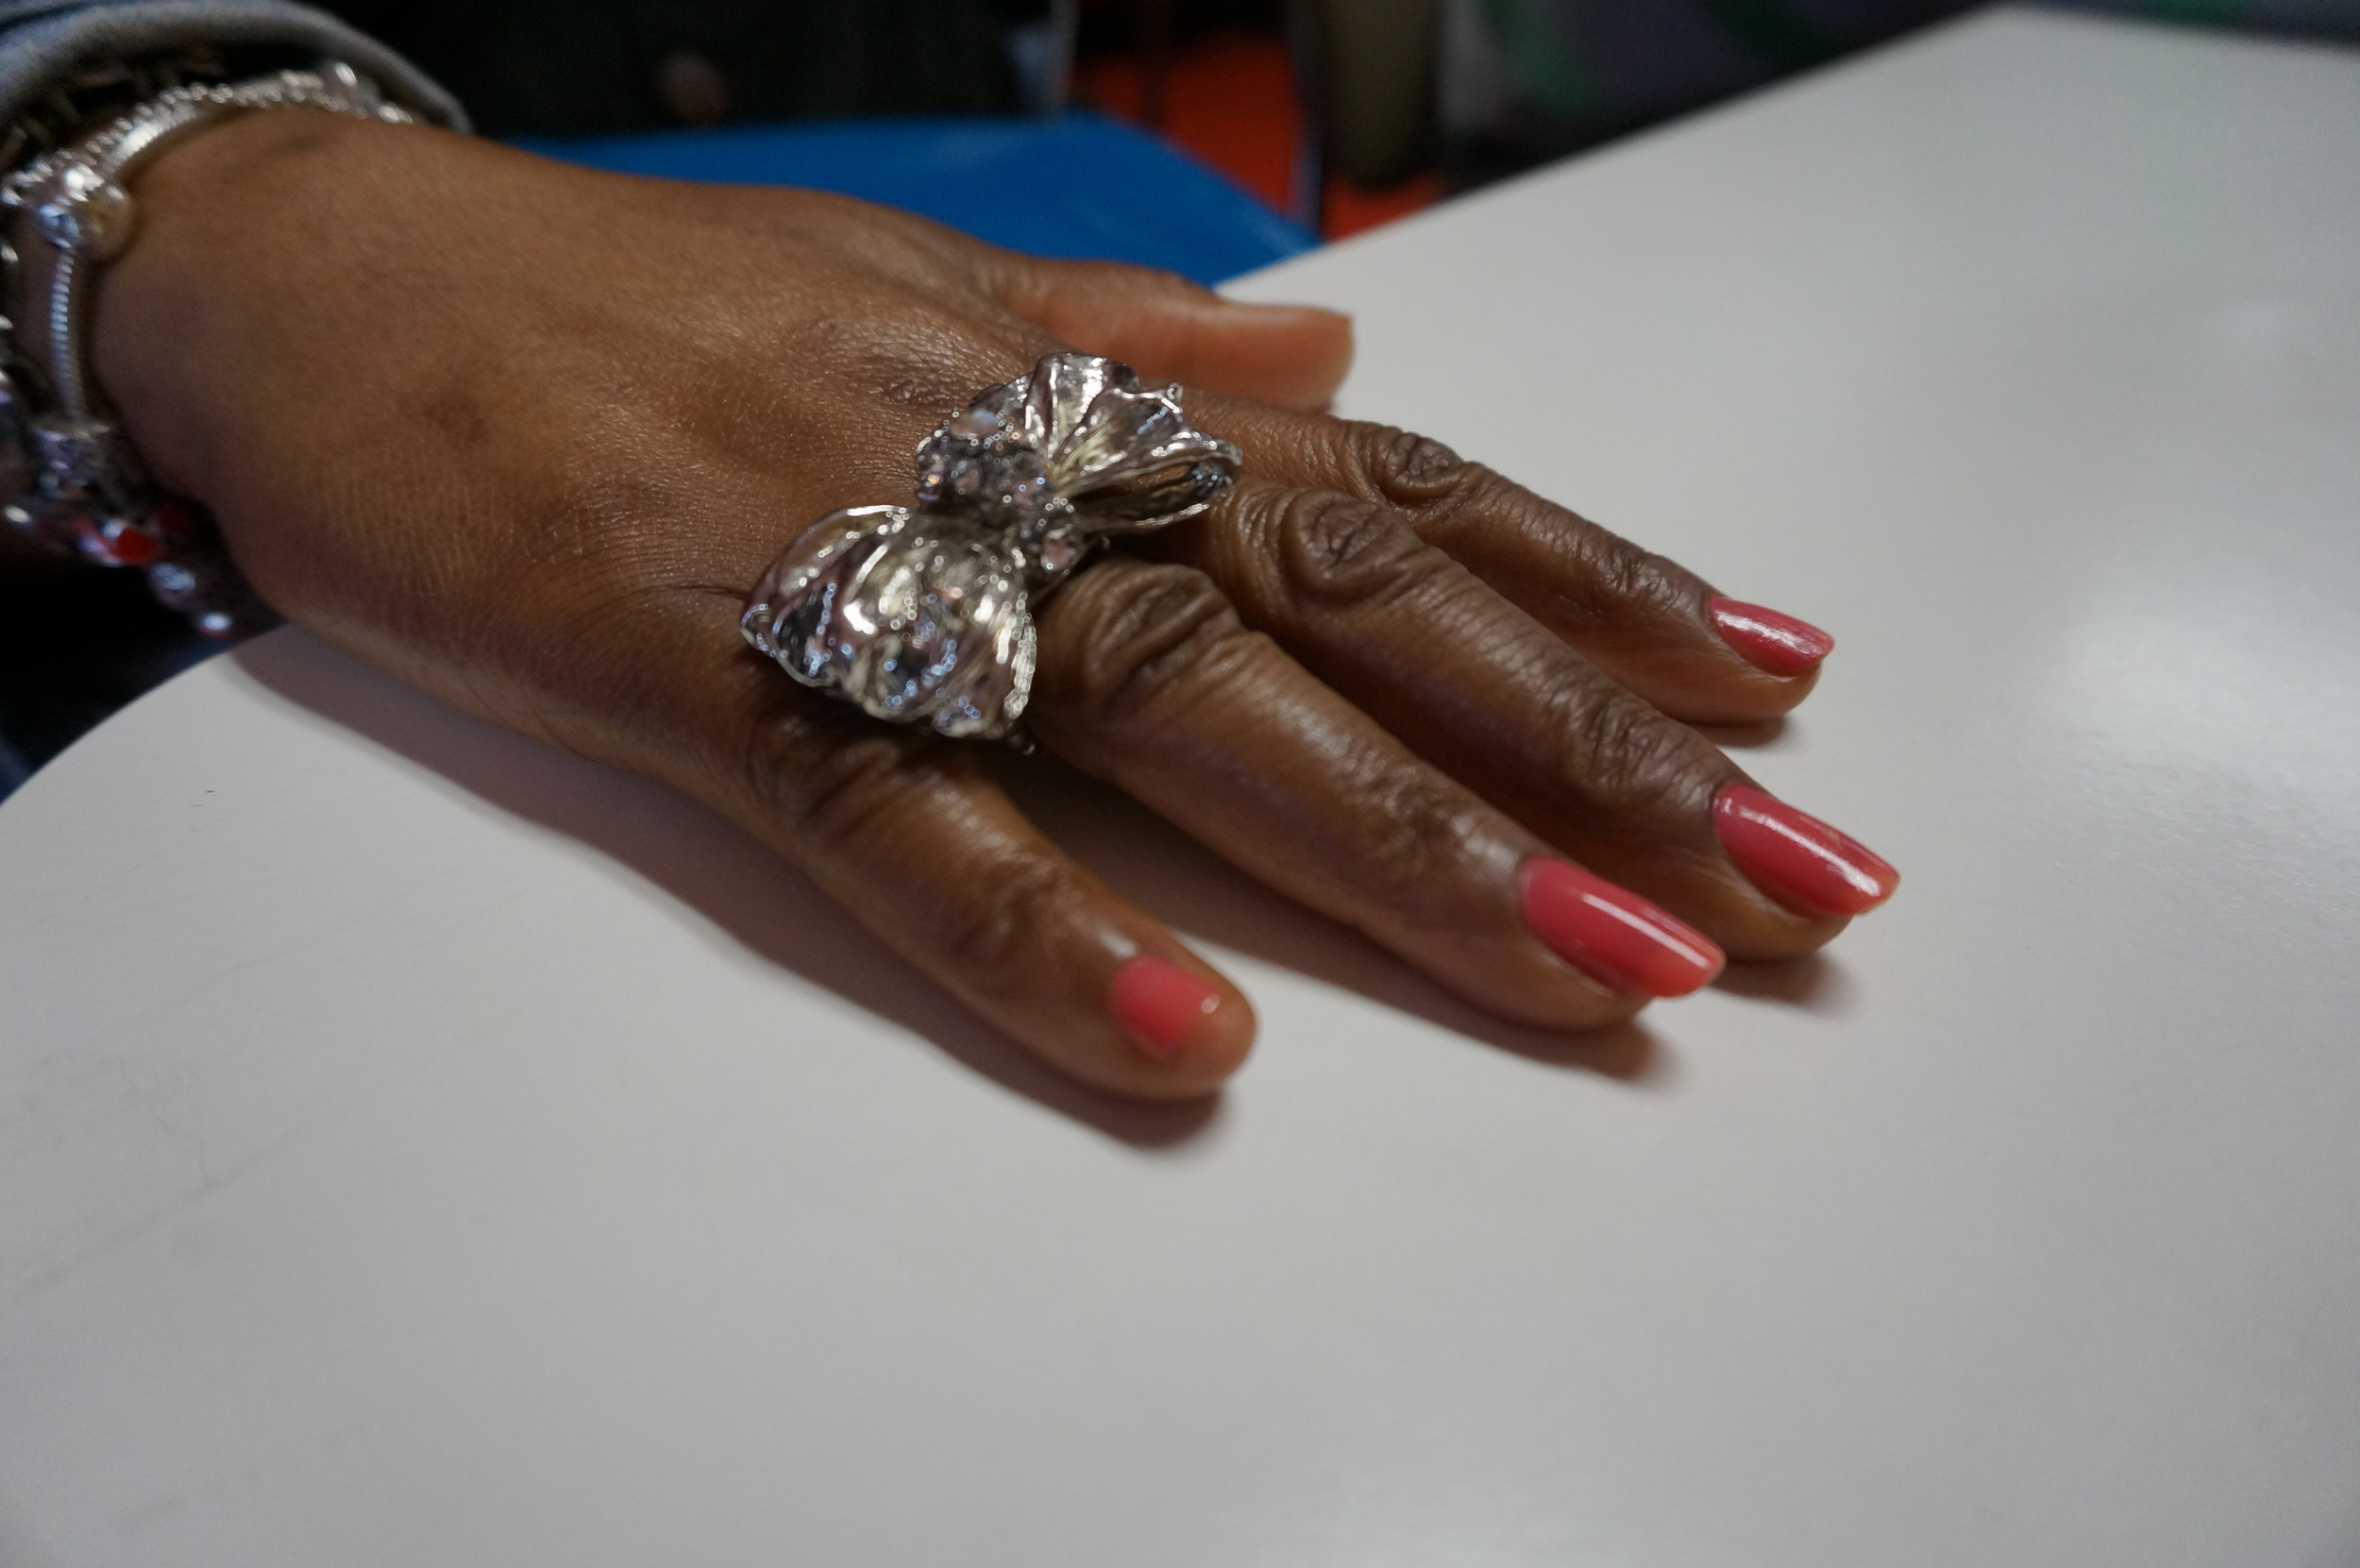 My mother wanted me to take a picture of her ring and nails lmao!